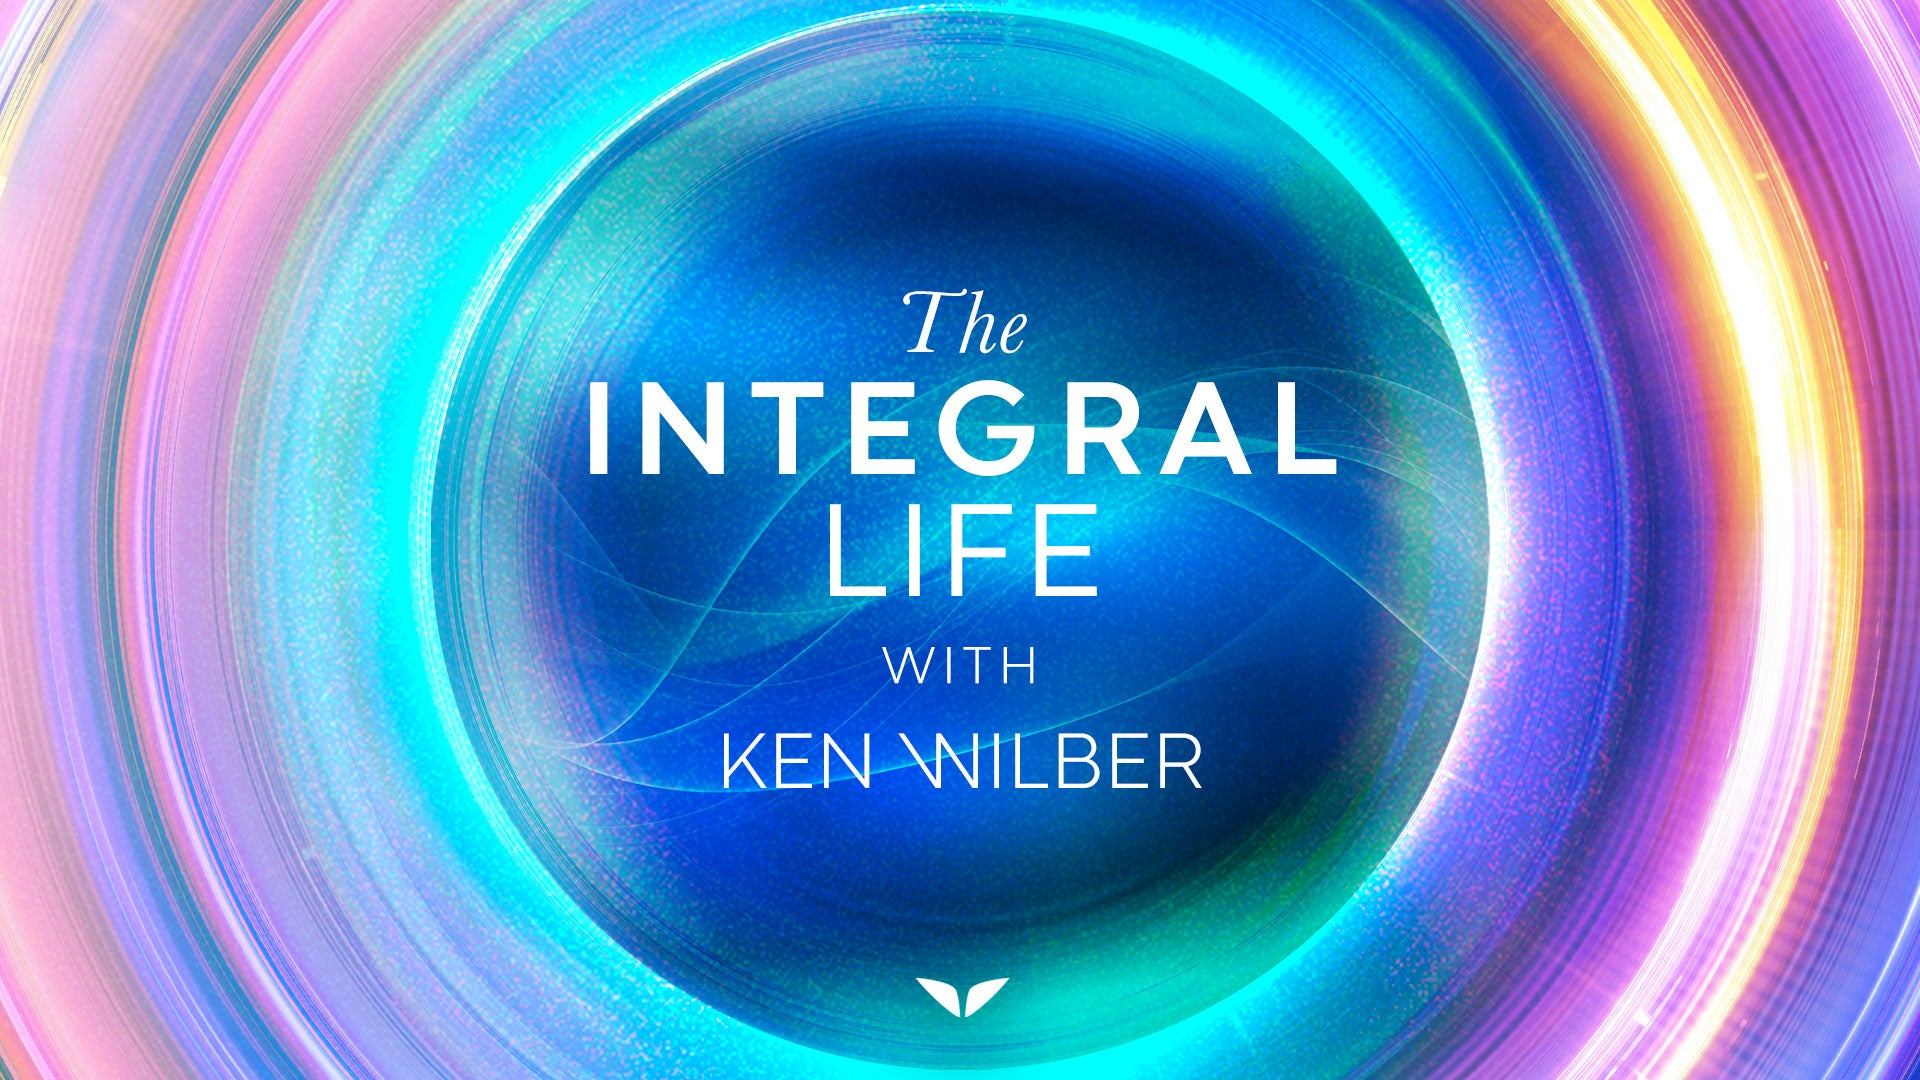 The Integral Life